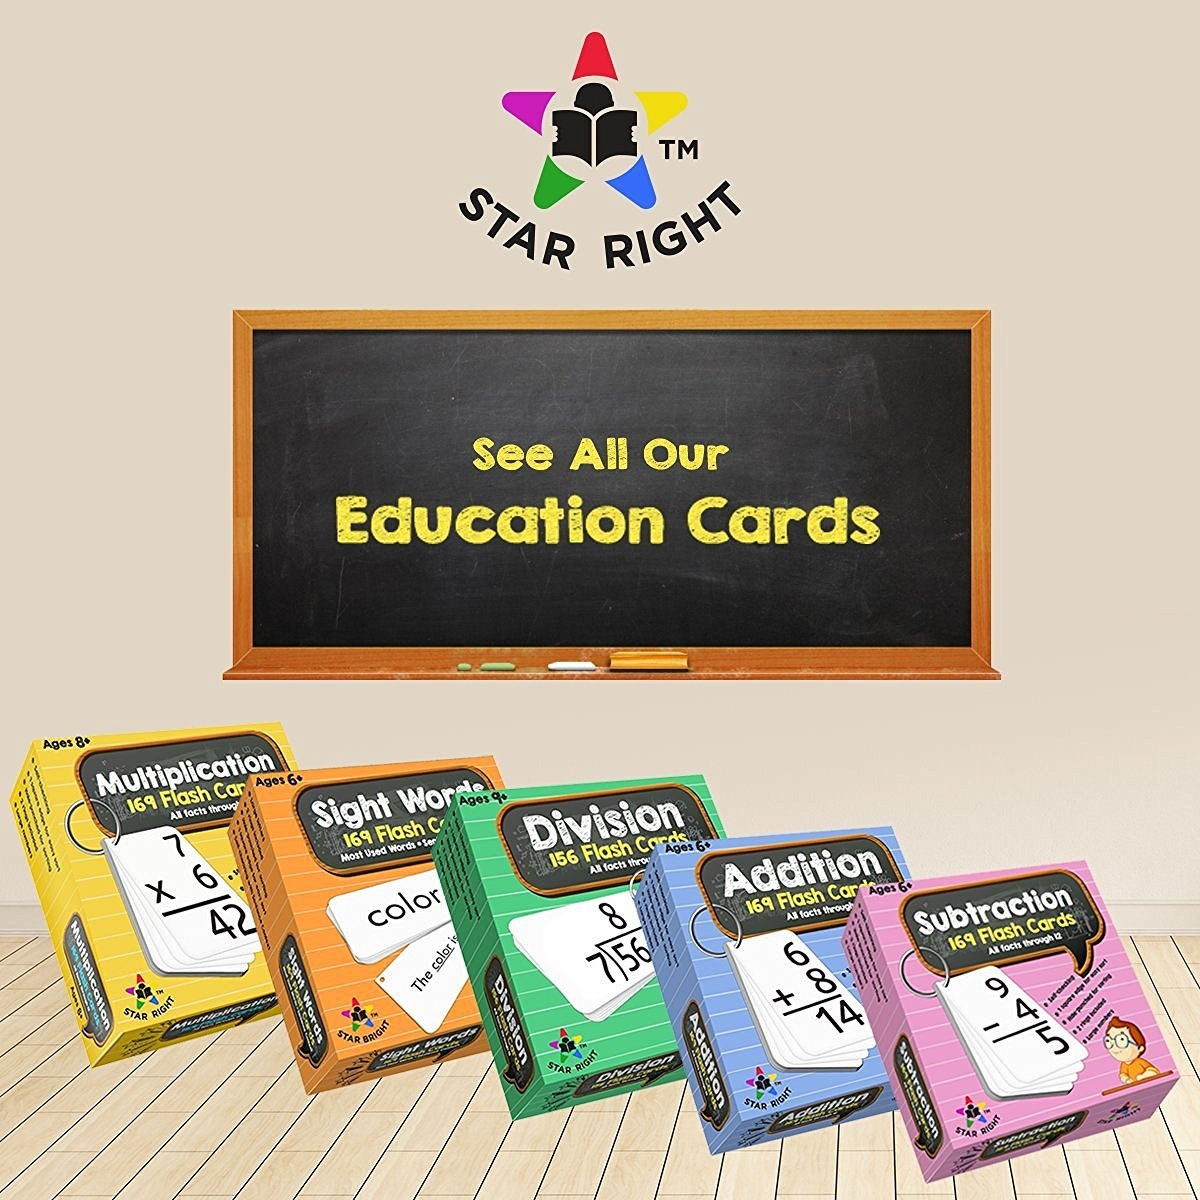 Star Education Math Division Flash Cards, 0-12 (All Facts